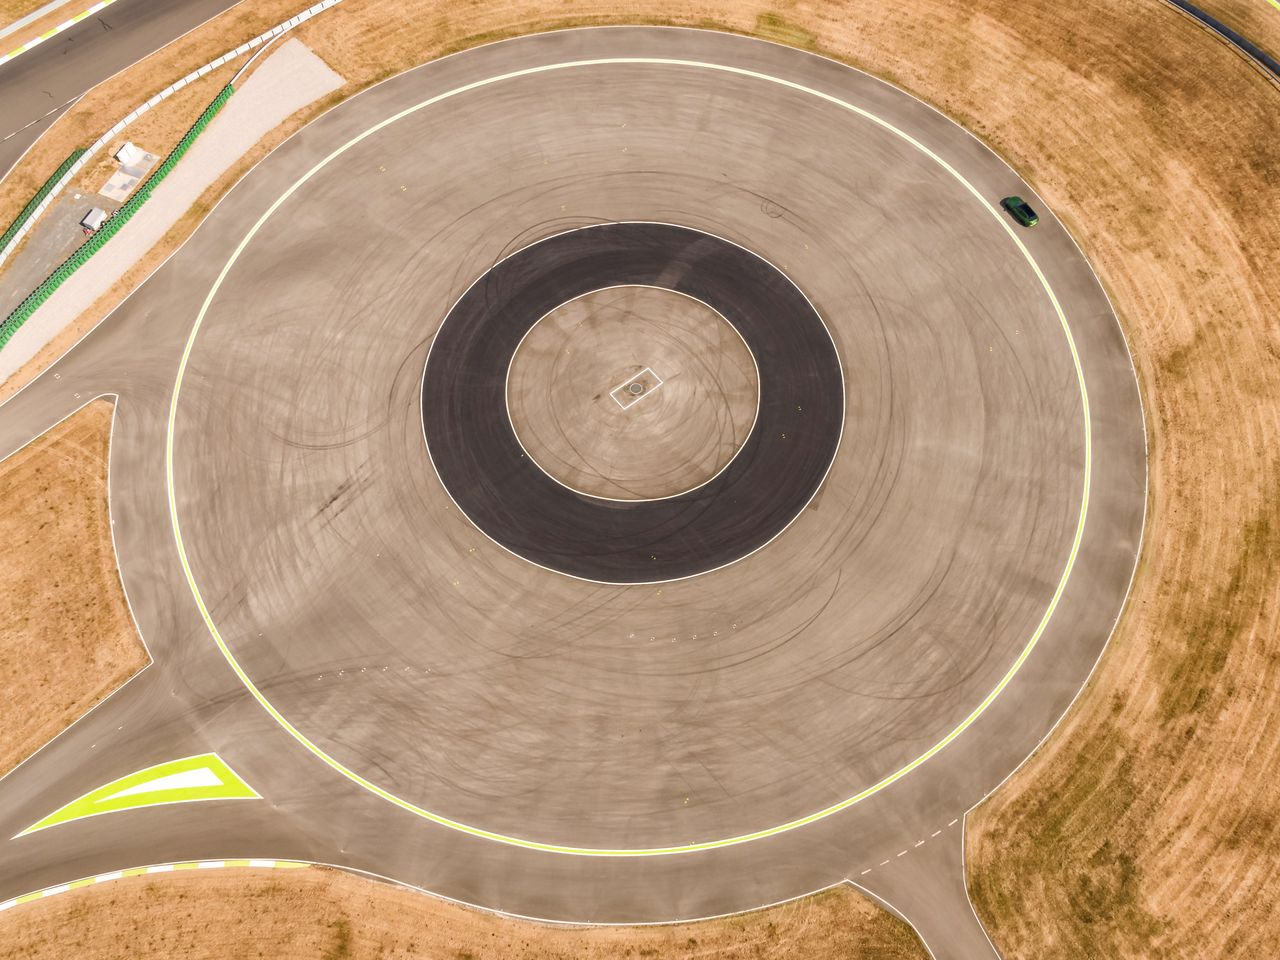 Skid pad | This training track for handling unstable driving conditions can also be flooded.